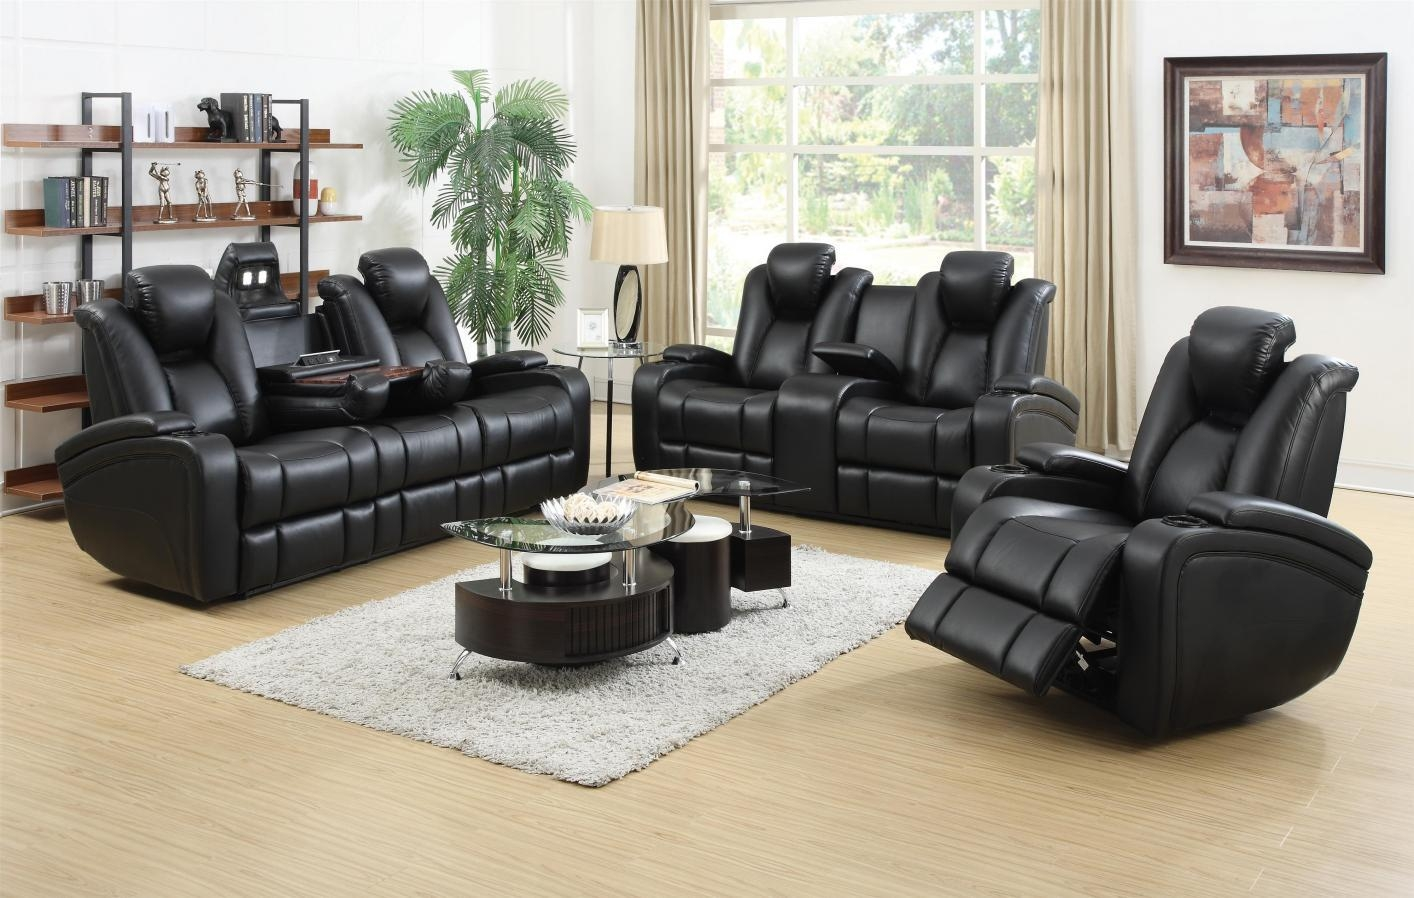 Black Leather Power Reclining Sofa And Loveseat Set – Steal A Sofa With Black Leather Sofas And Loveseat Sets (Image 2 of 20)